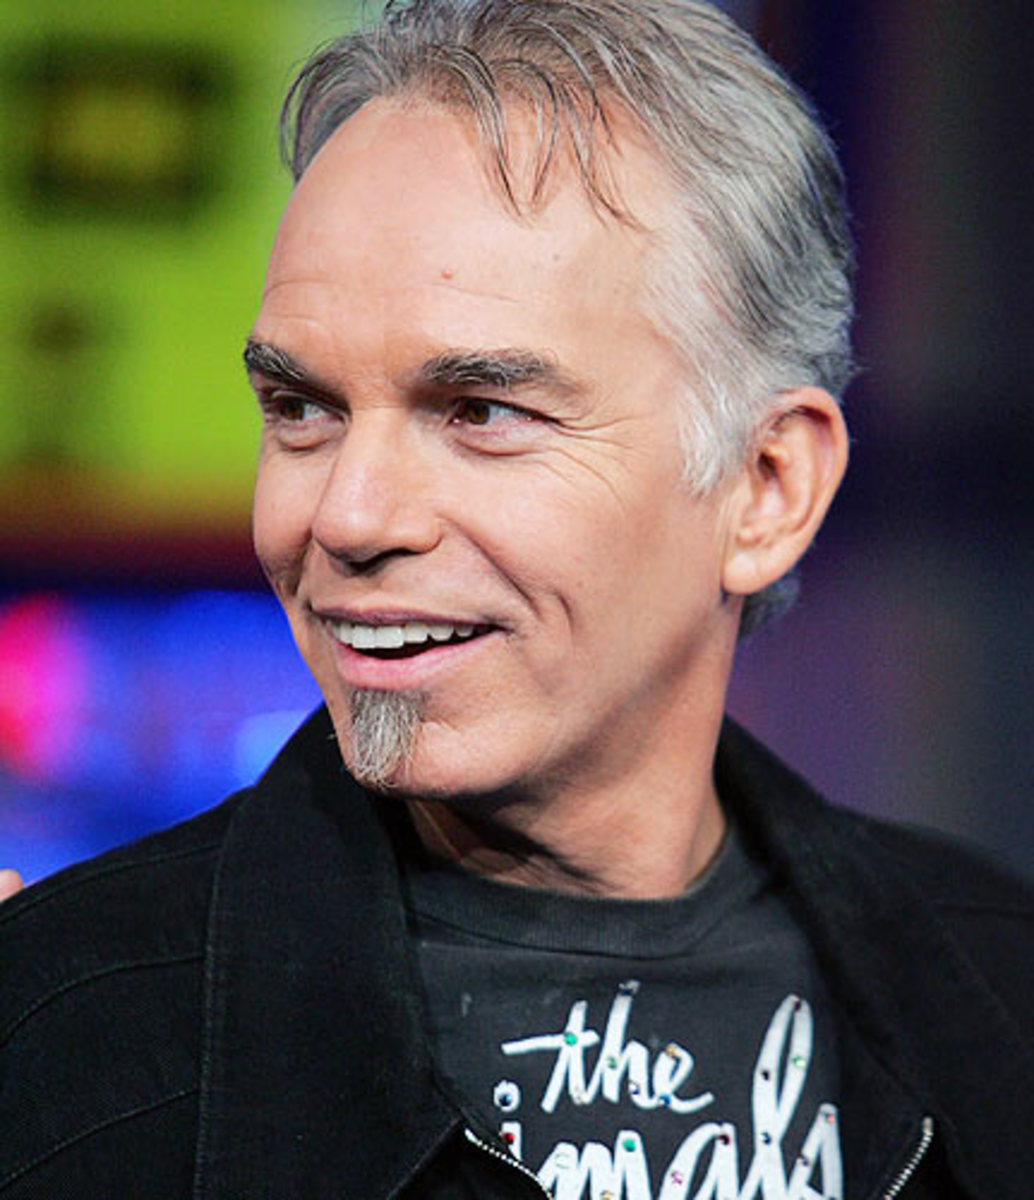 Billy Bob Thornton lives gluten free.